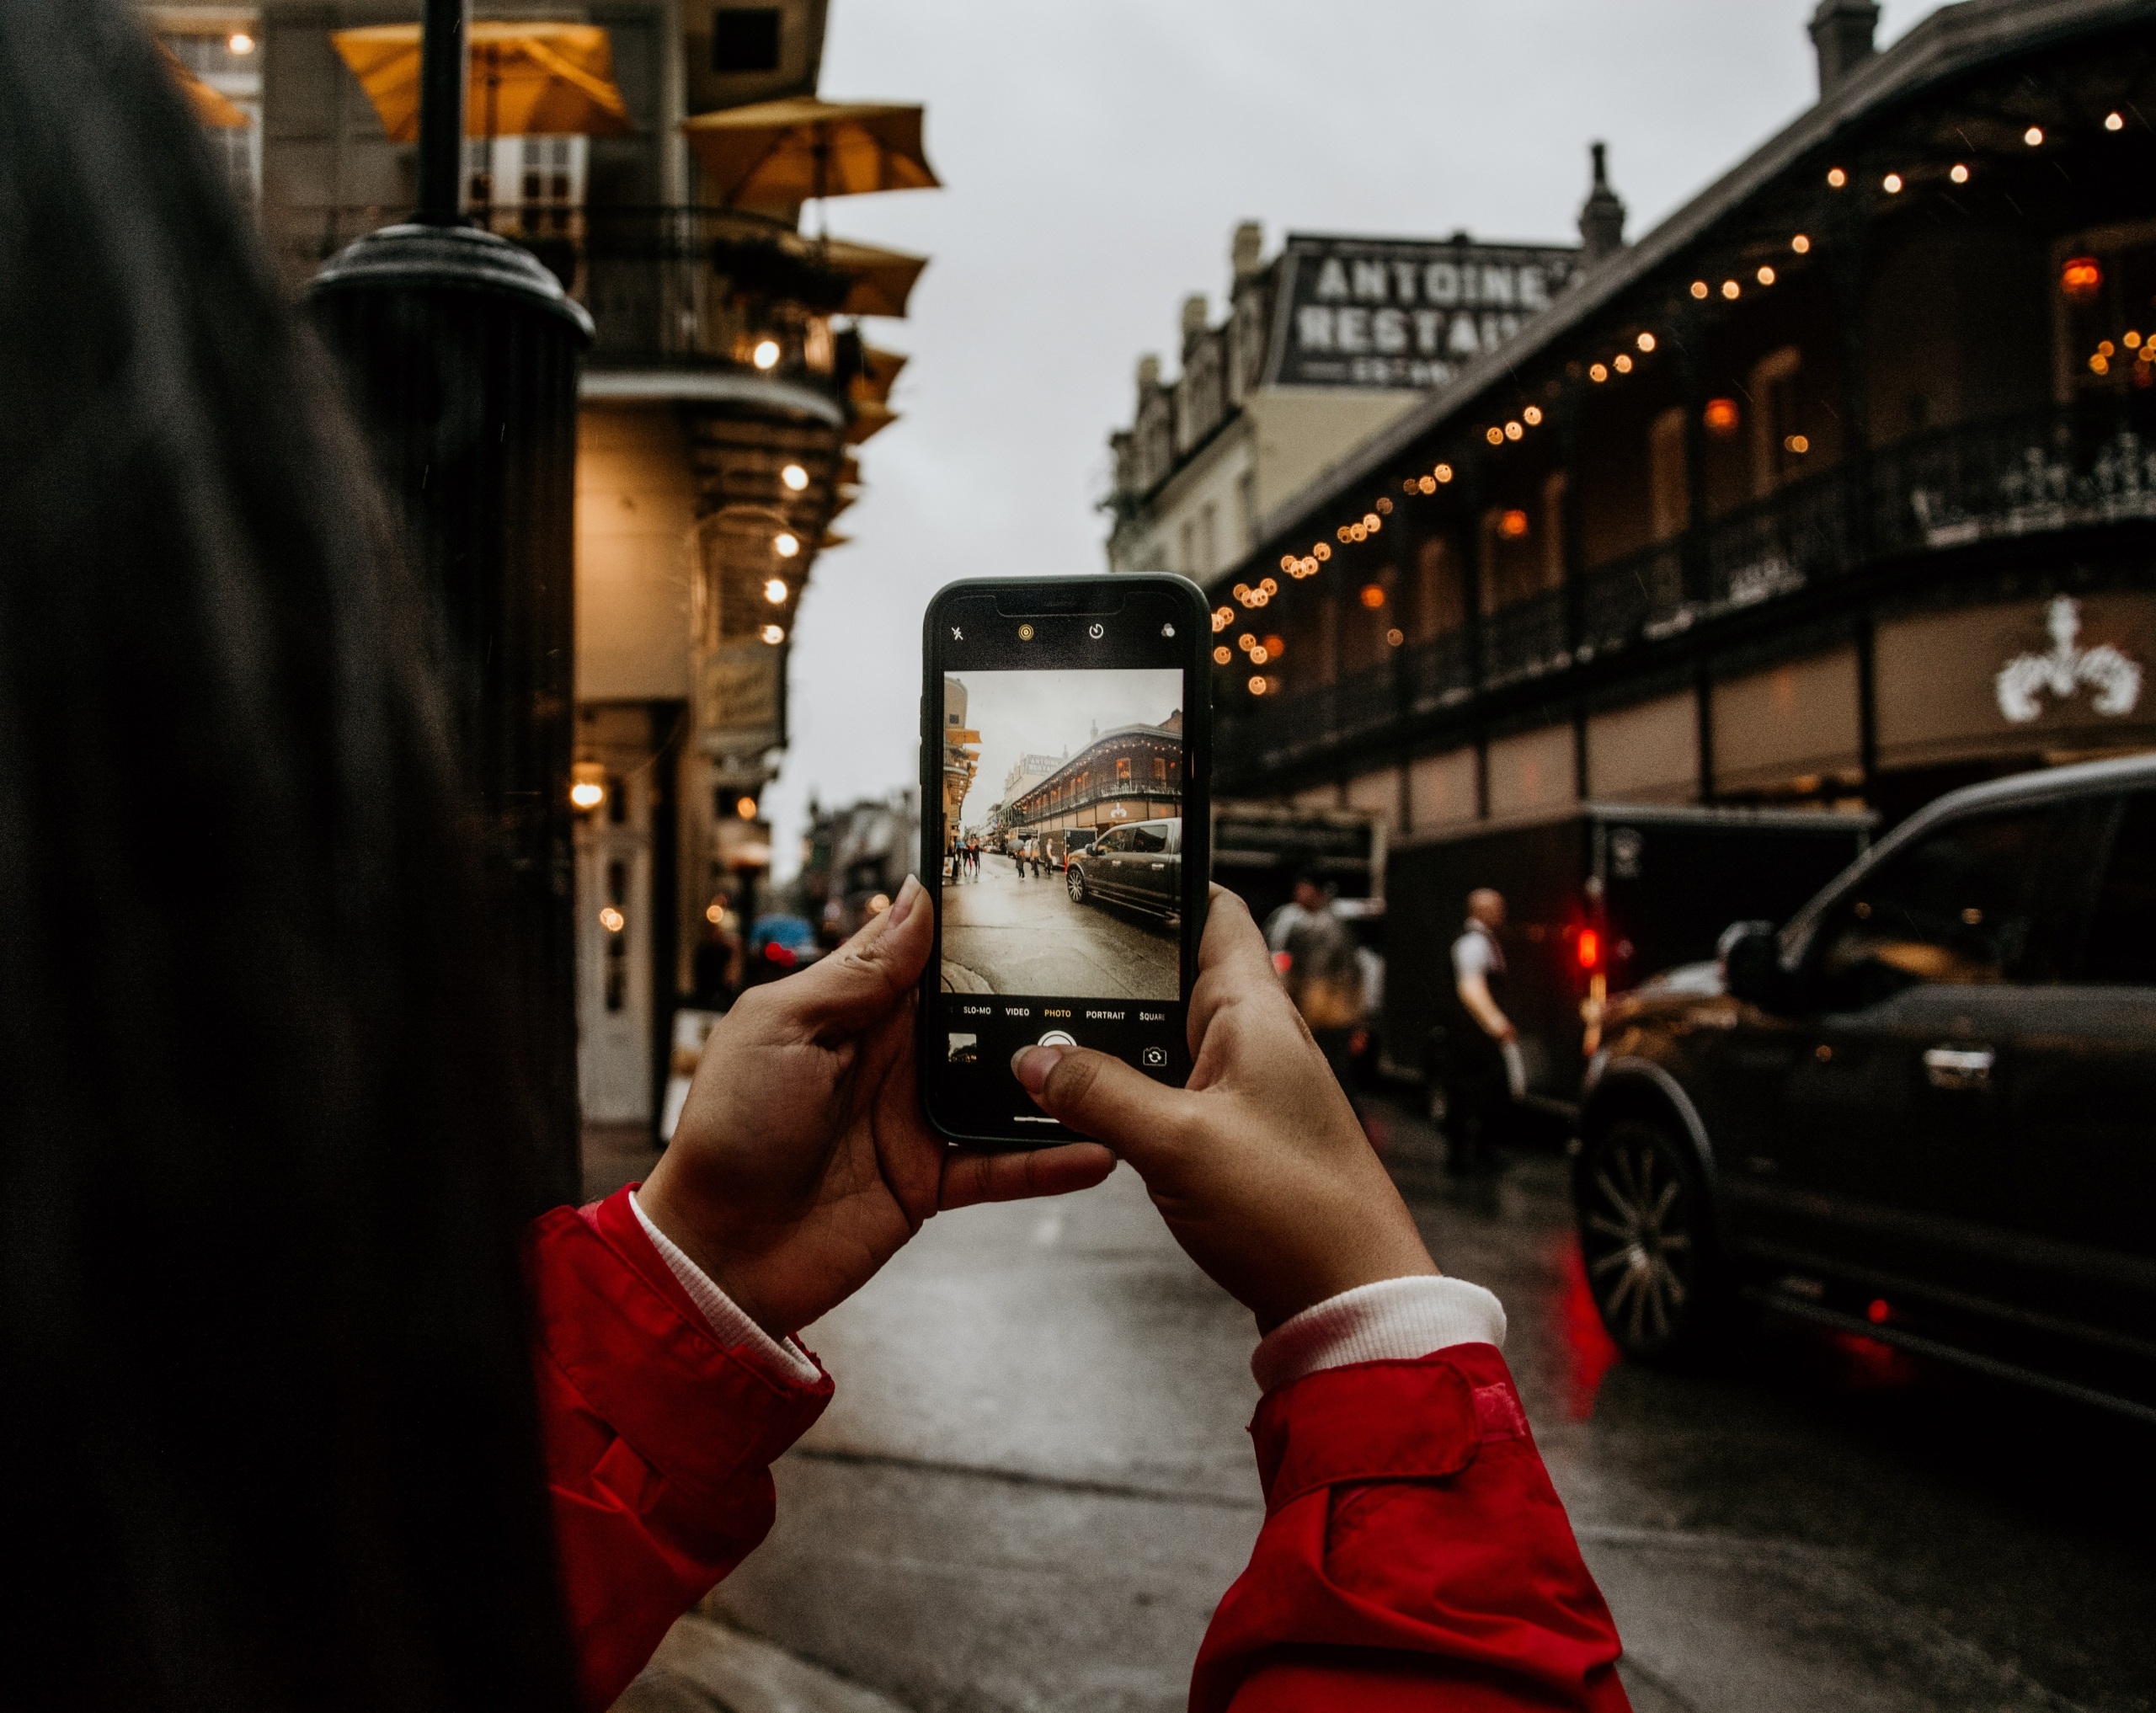 A woman taking a photo of Antoine's Restaurant with her phone